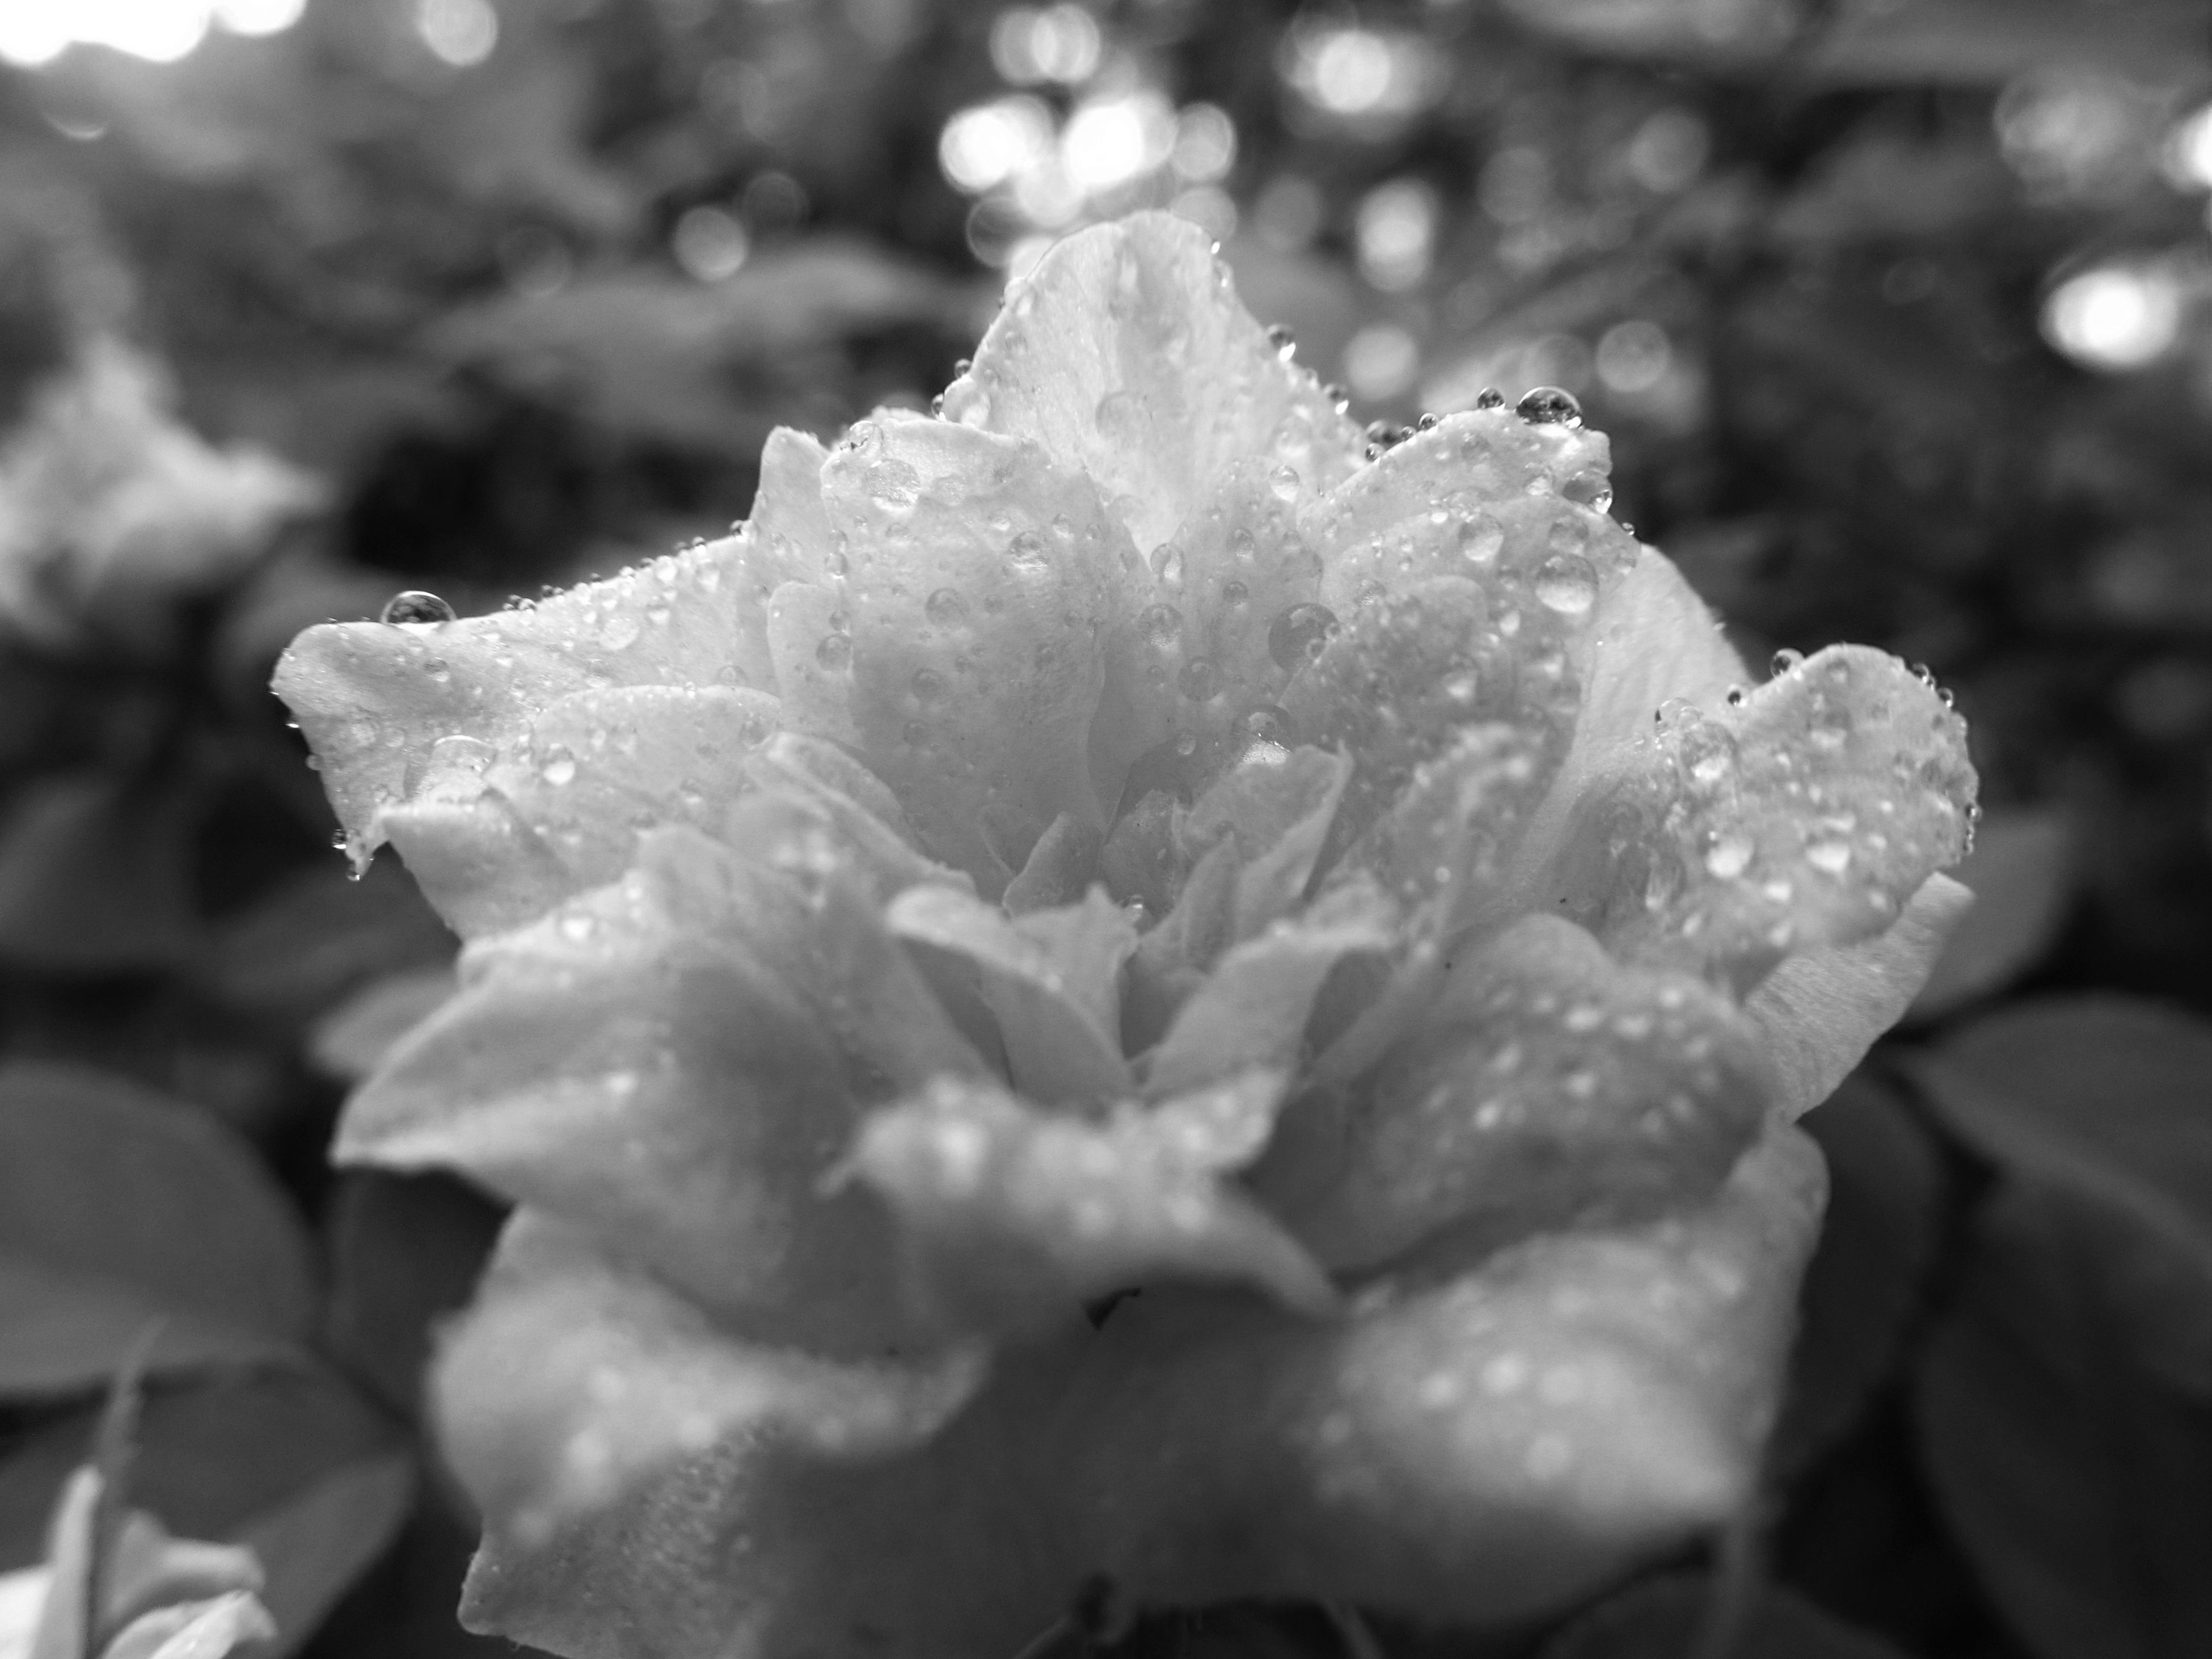 flower, fragility, freshness, close-up, drop, wet, beauty in nature, petal, water, growth, flower head, dew, selective focus, nature, in bloom, plant, extreme close-up, single flower, springtime, droplet, water drop, pink color, blossom, rose - flower, softness, day, botany, purity, growing, outdoors, soft focus